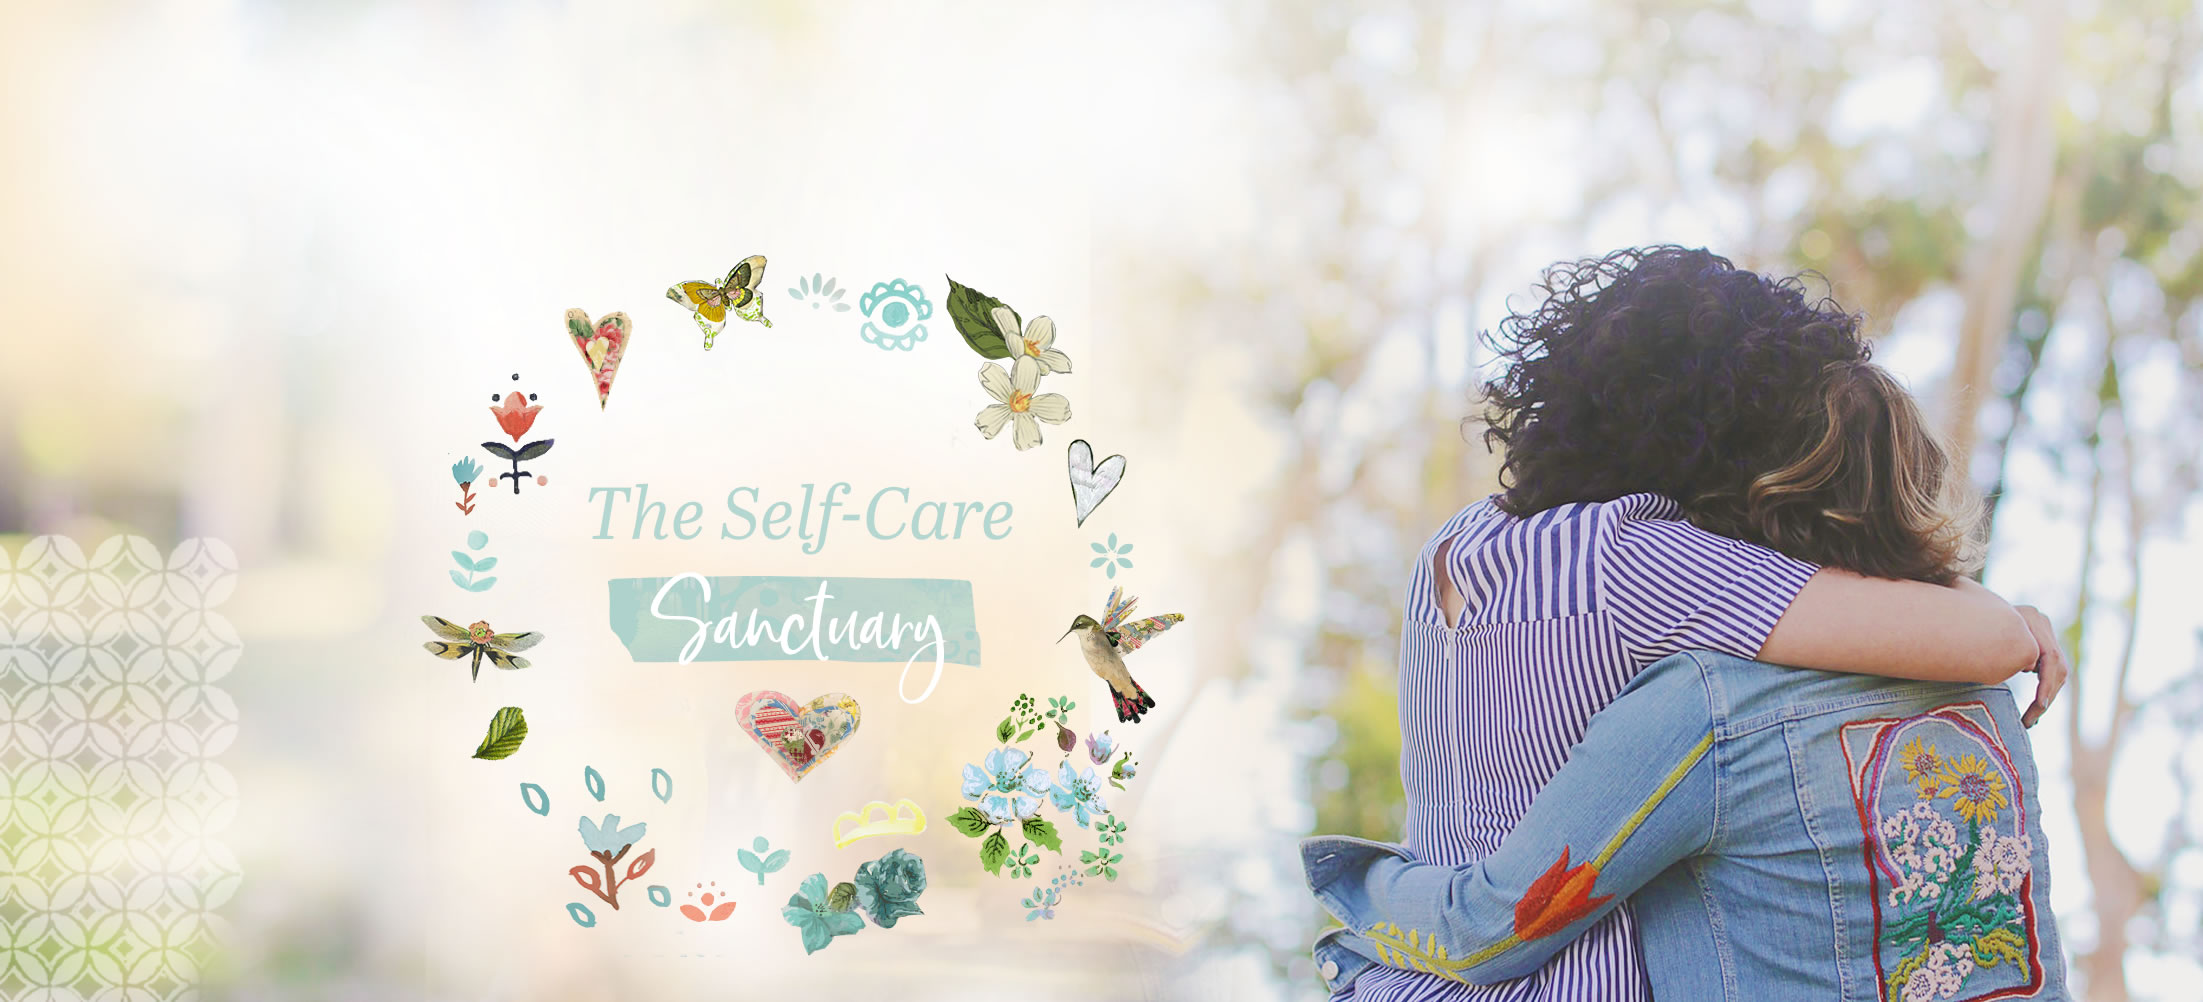 The Self-Care Sanctuary